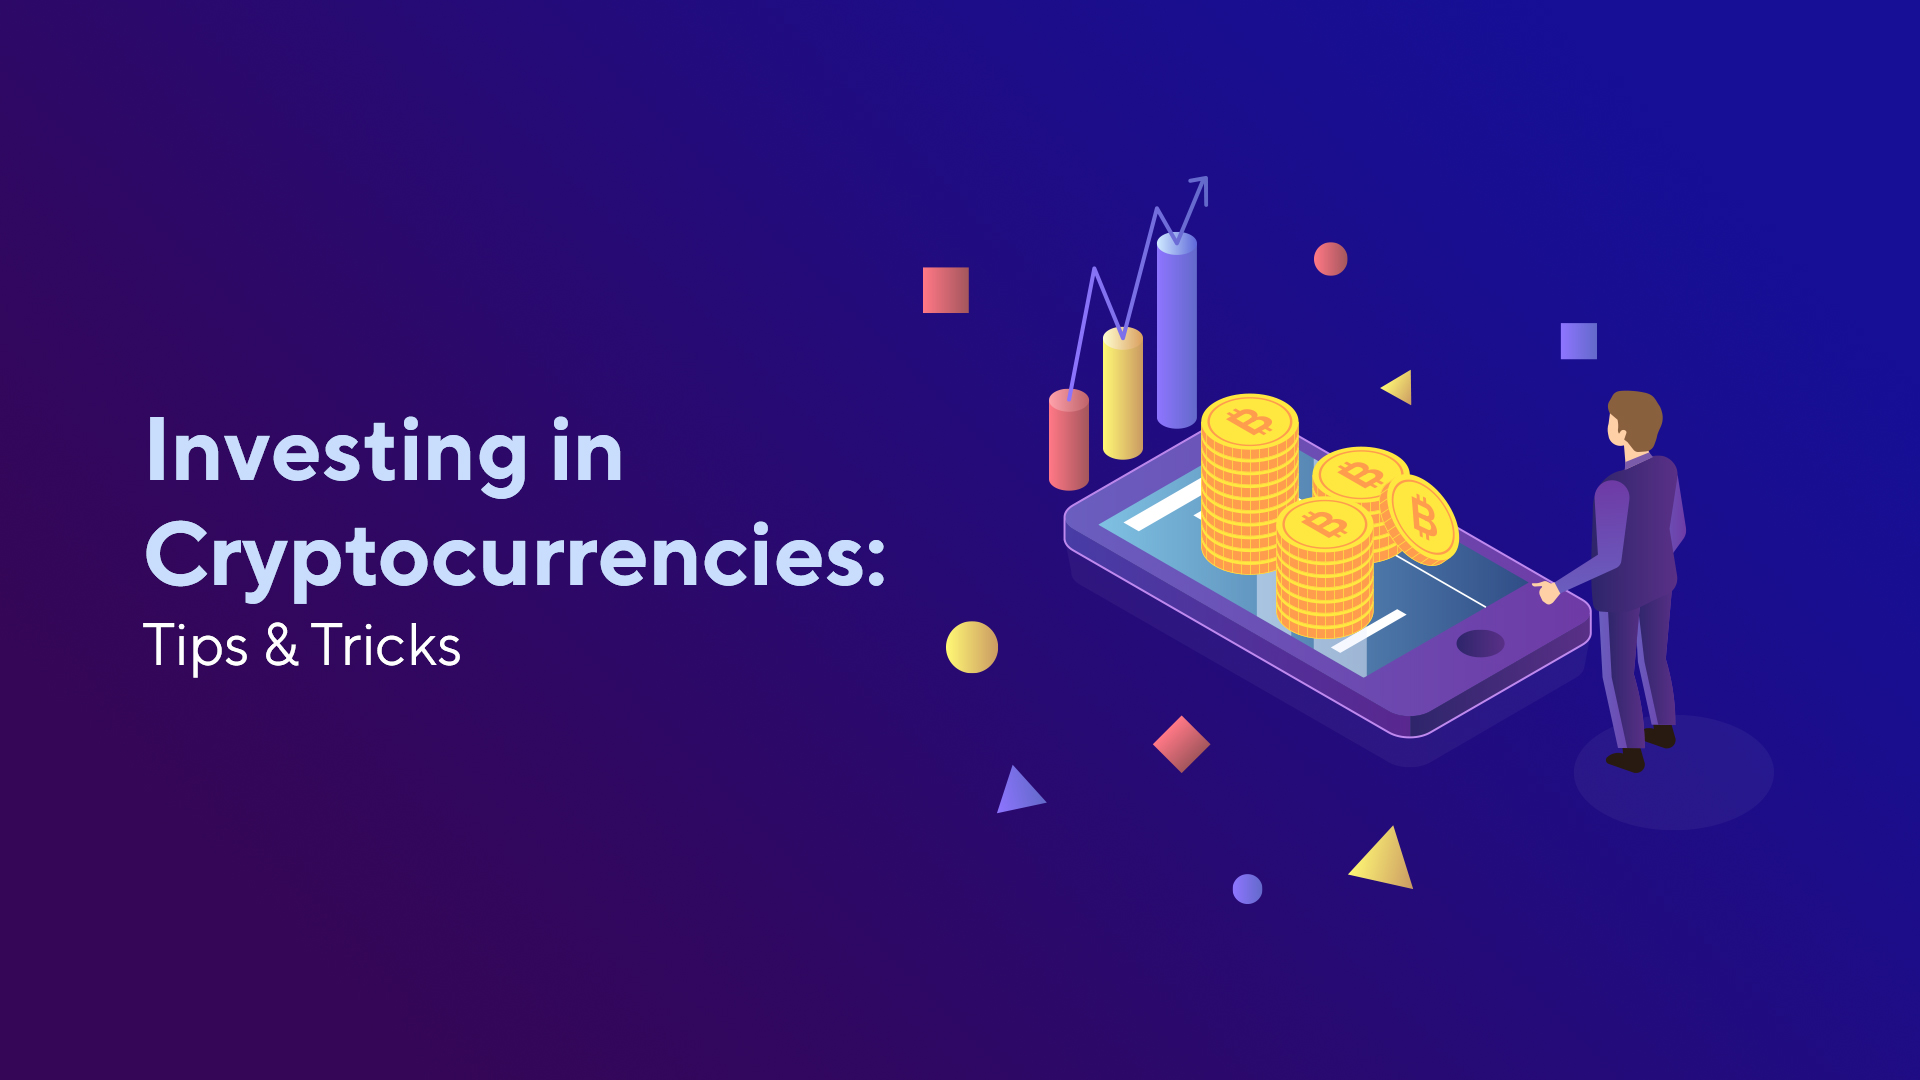 Investing in Cryptocurrencies: Tips & Tricks